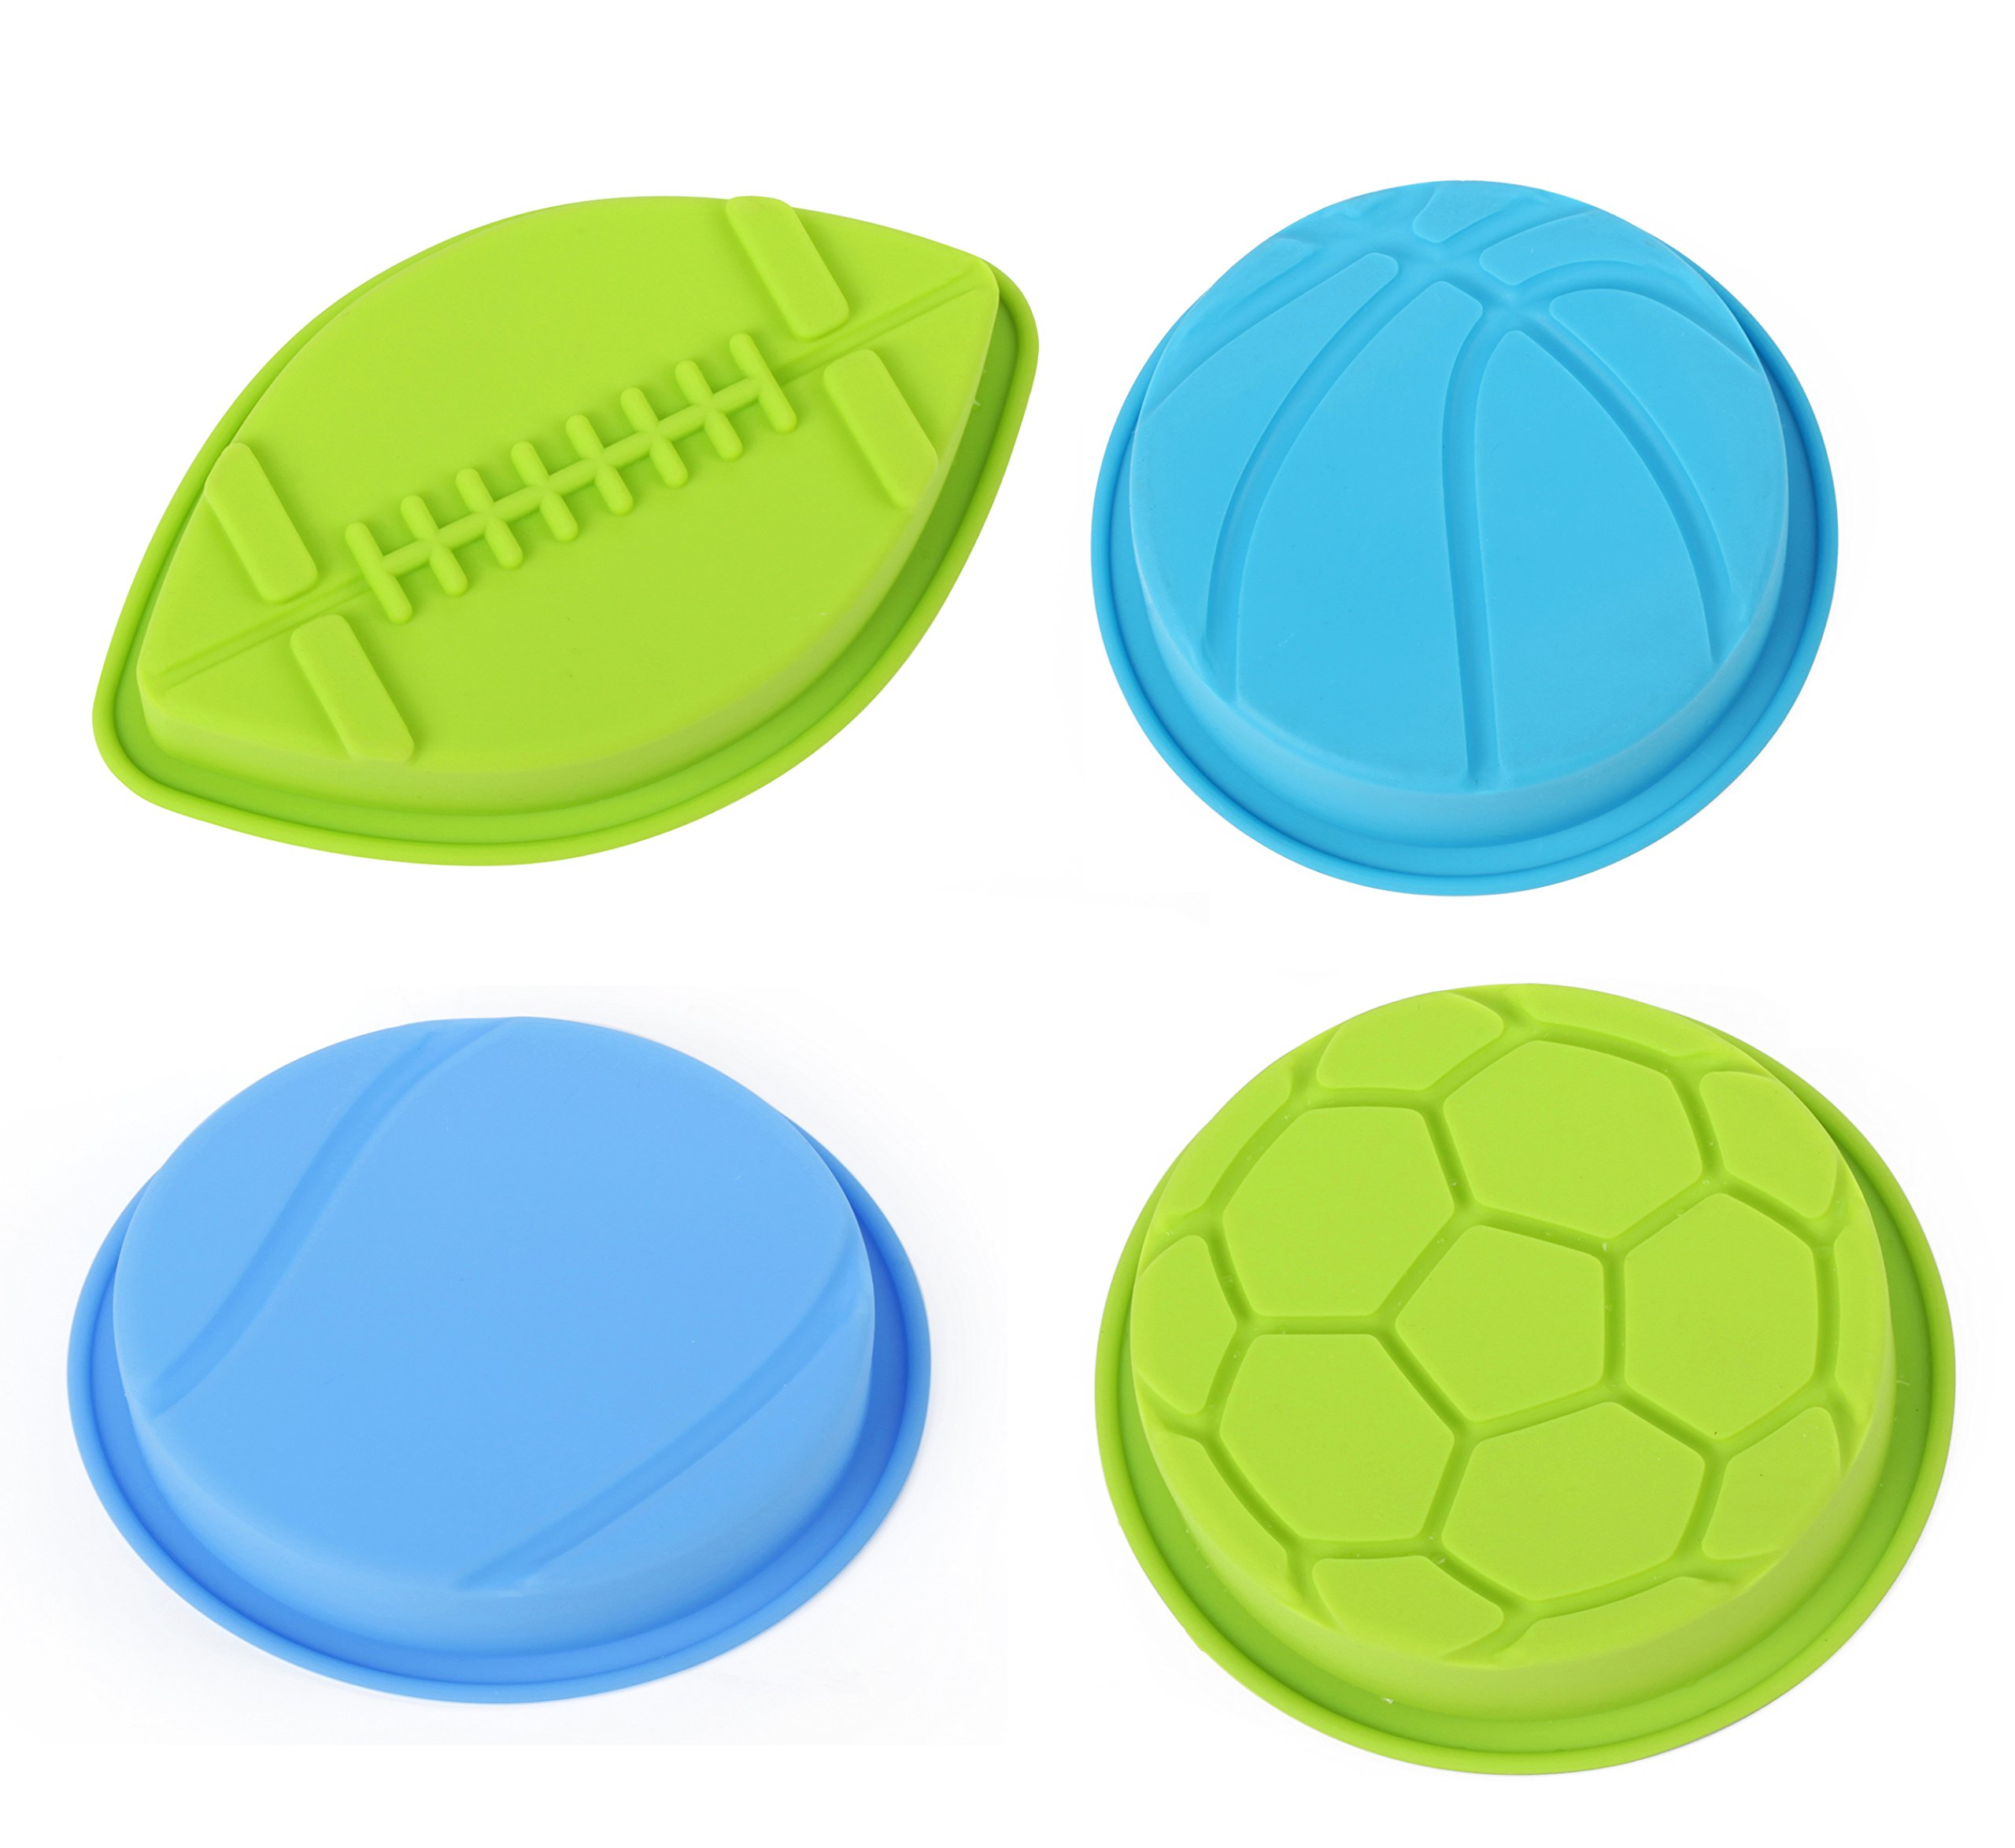 Home Value Colorful Silicone Sports Ball Set'' Soccer, Tennis, Baseball, Basketball '' Cake Mold, Assorted Colors (HVCOOKIECUTSC09) by Value Home (Image #1)